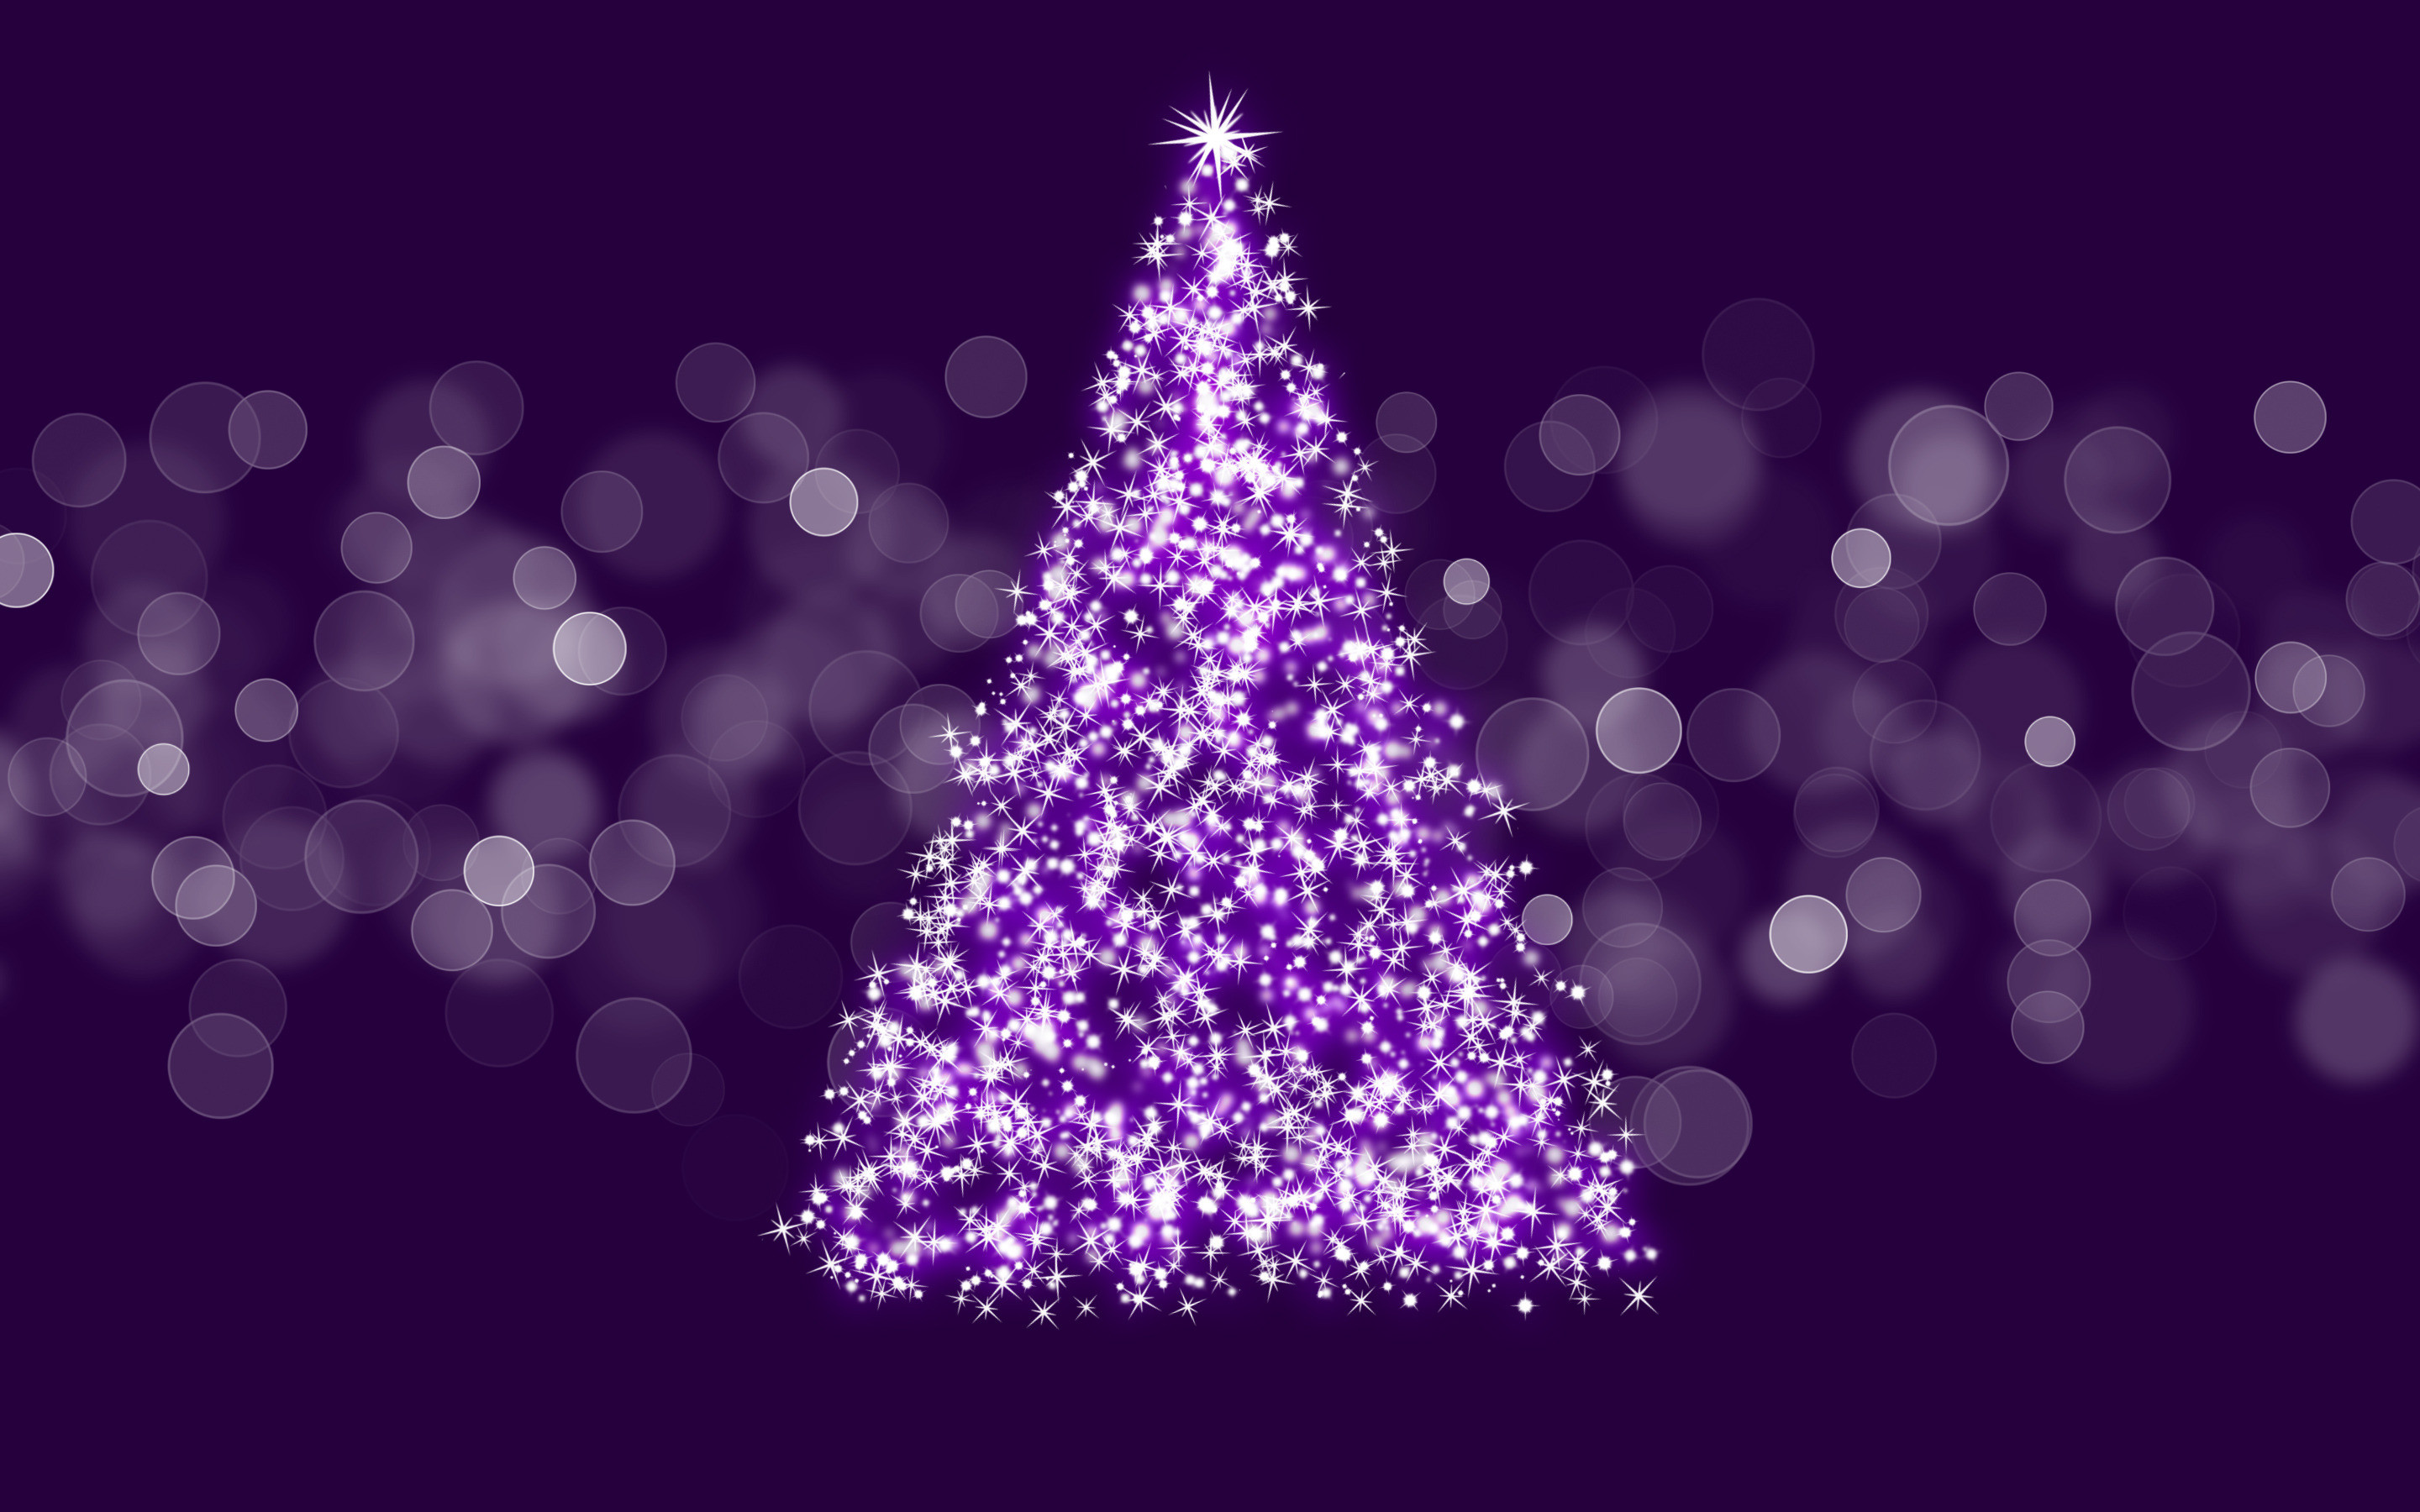 2880x1800 Christmas Tree Wallpapers For Wallpaper Images About Trees Toppers Tables  On Pinterest Purple And Silver Deco